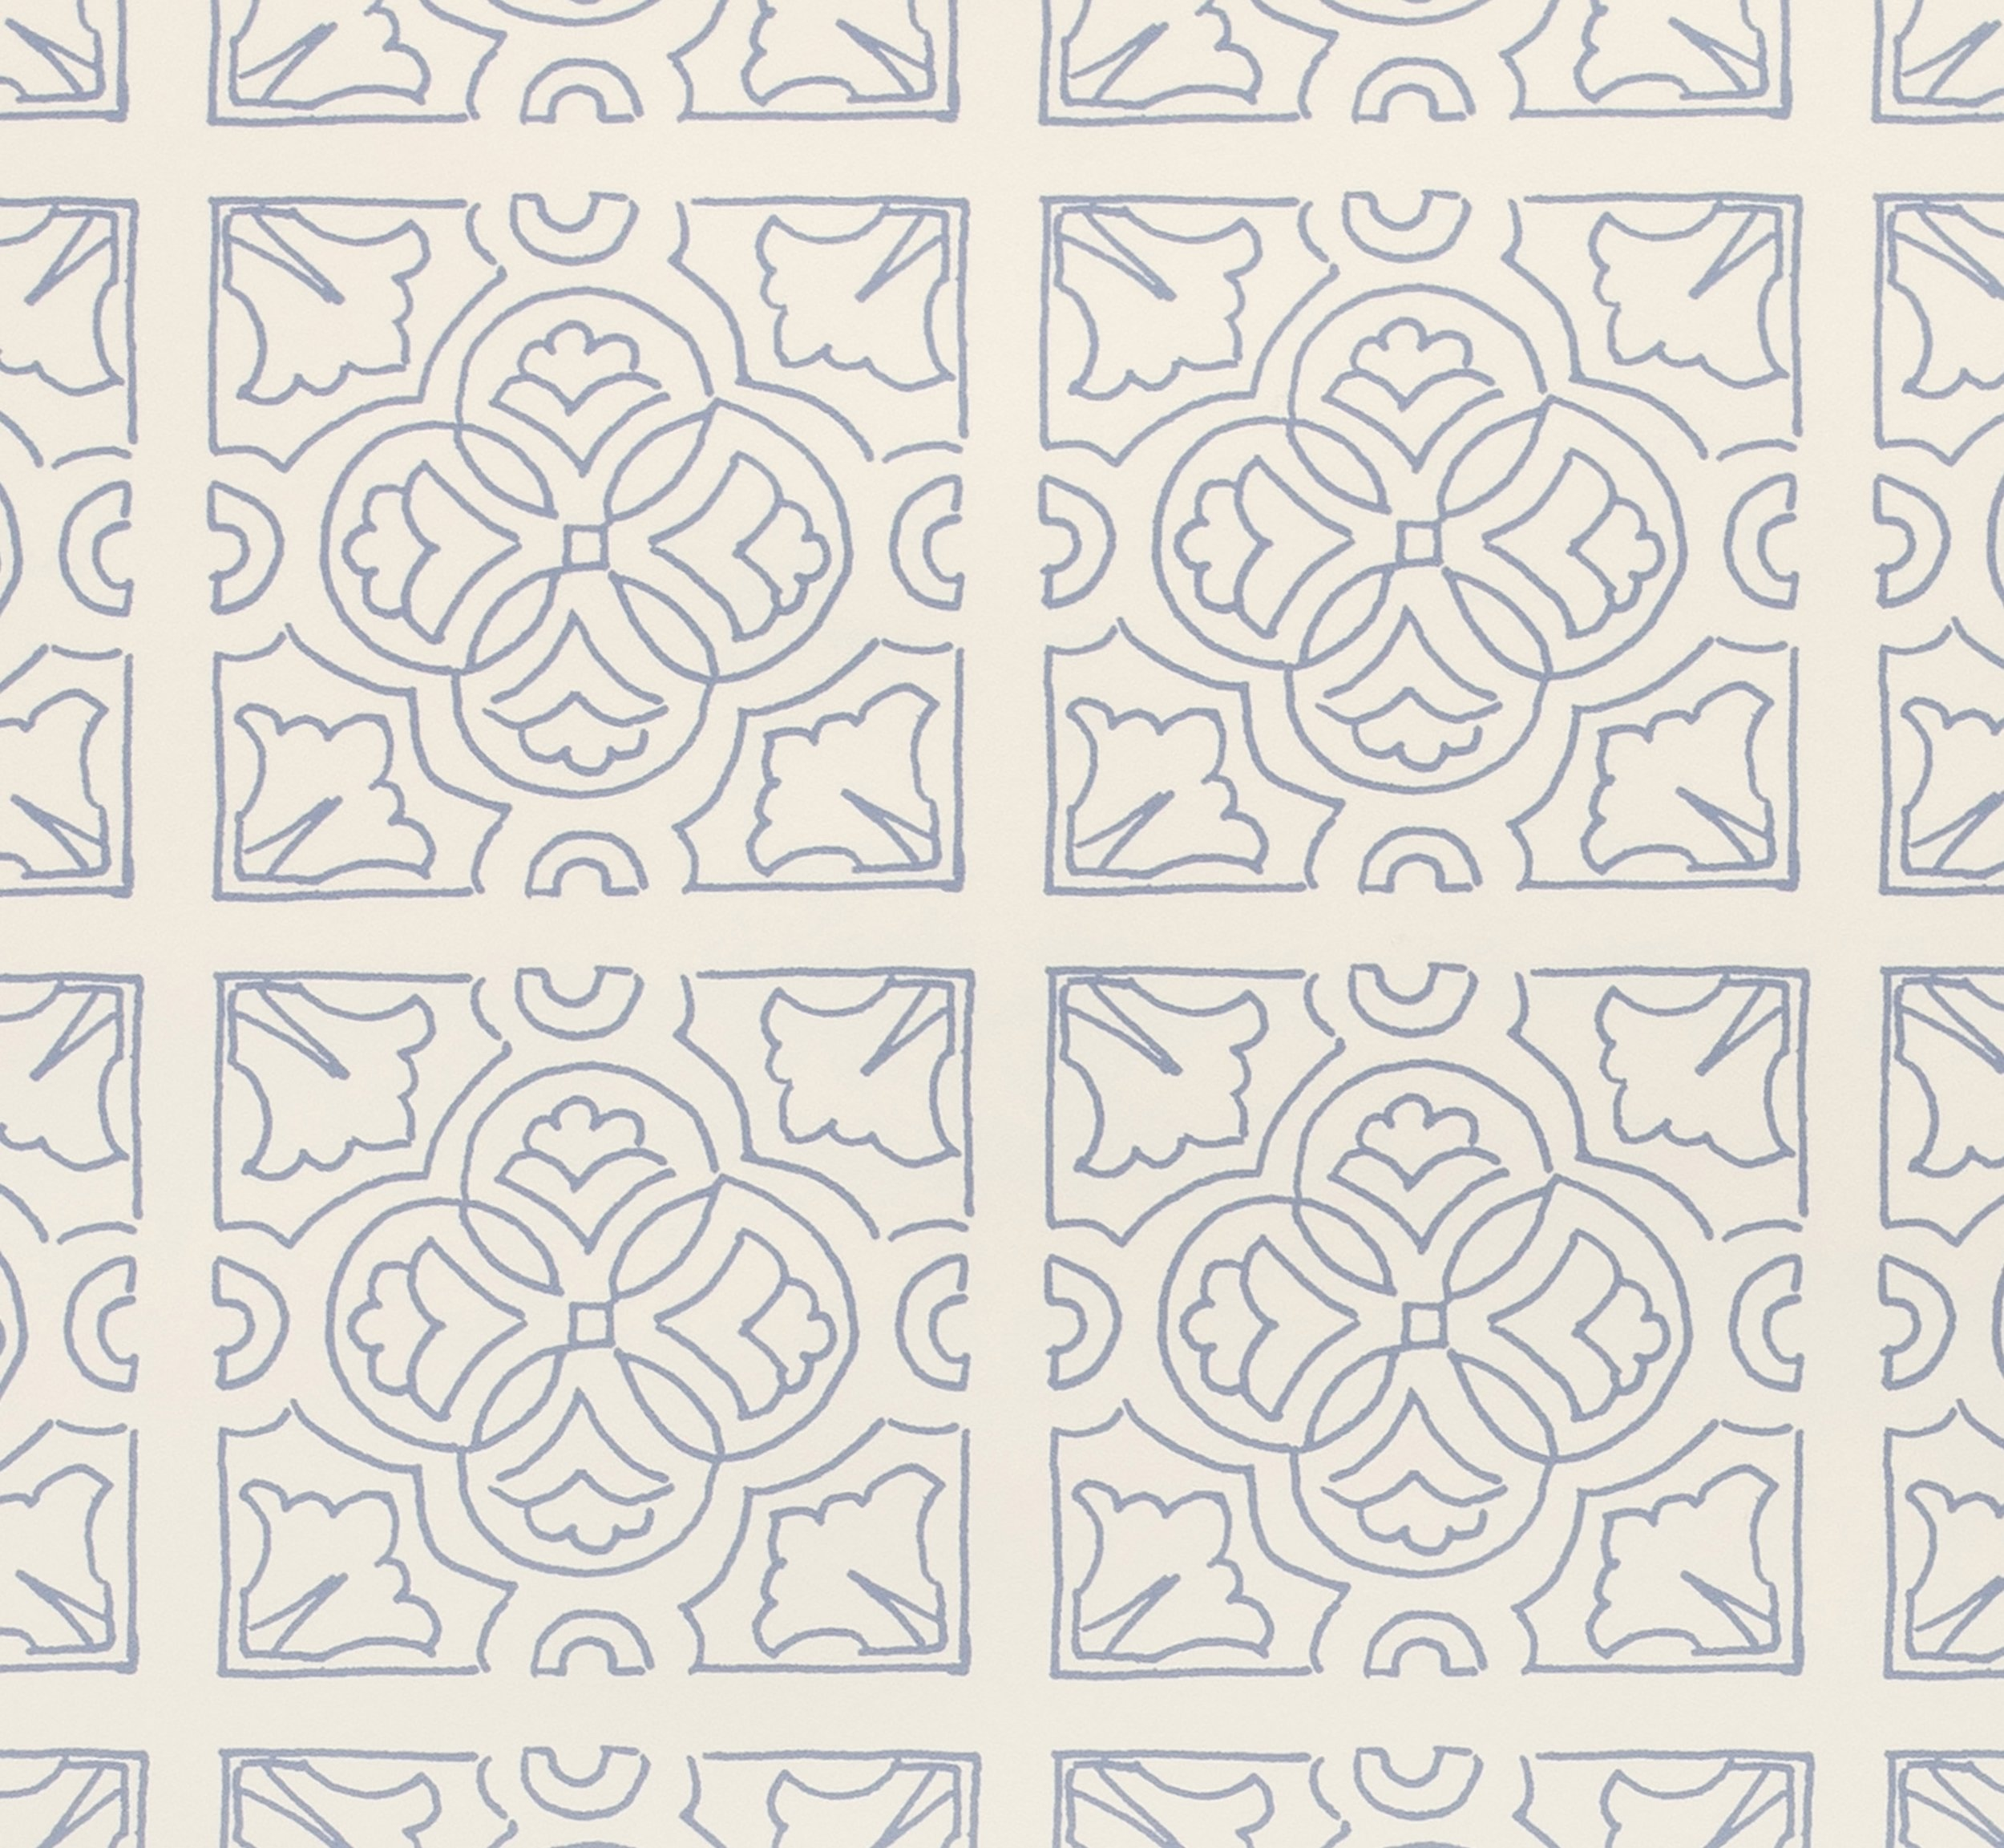 Irish Tile Wallpaper detail - Wedgewood Blue